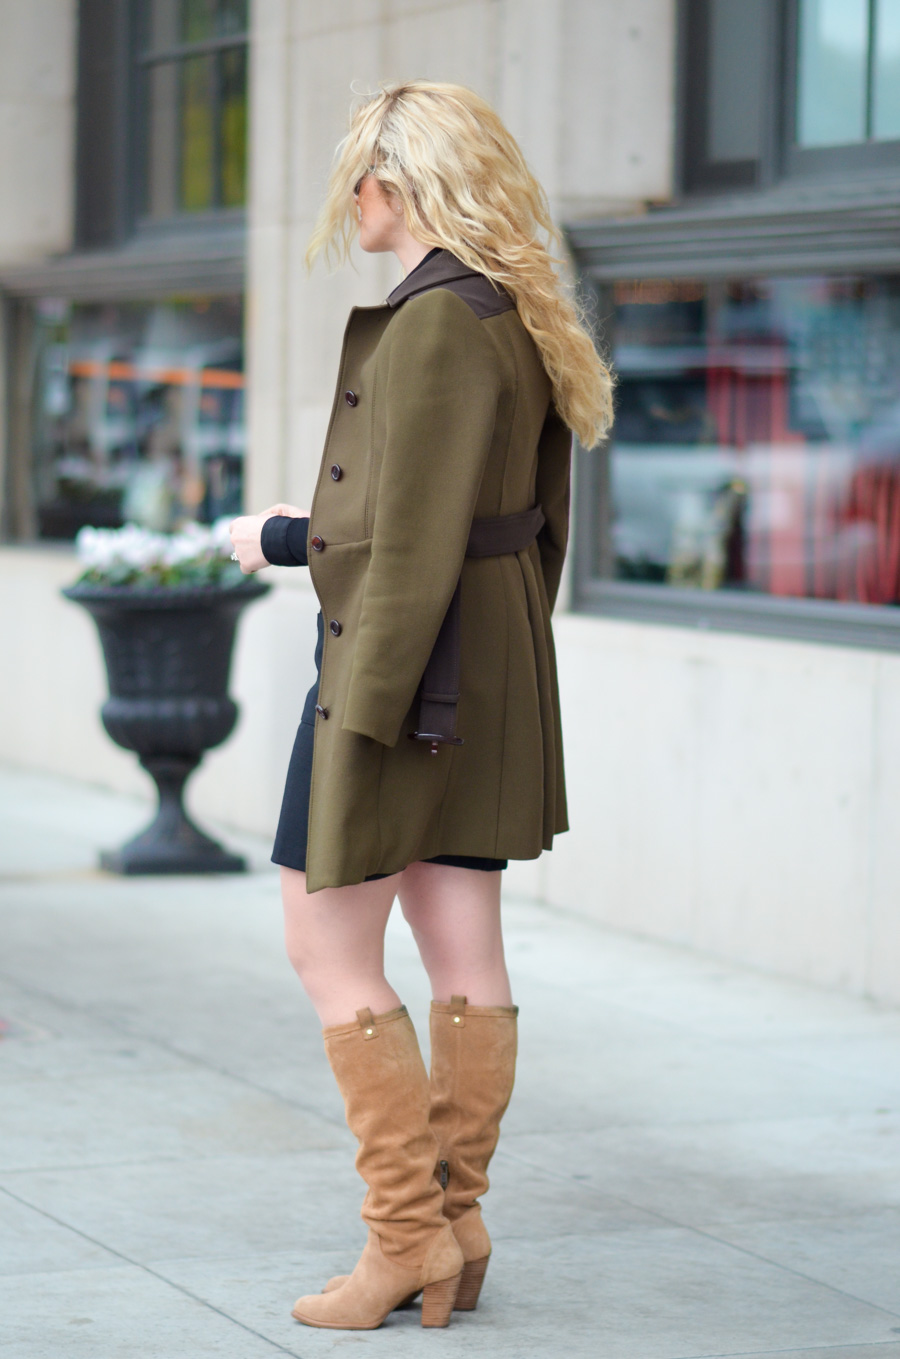 Le Meilleur How To Wear Uggs With Dresses Ce Mois Ci